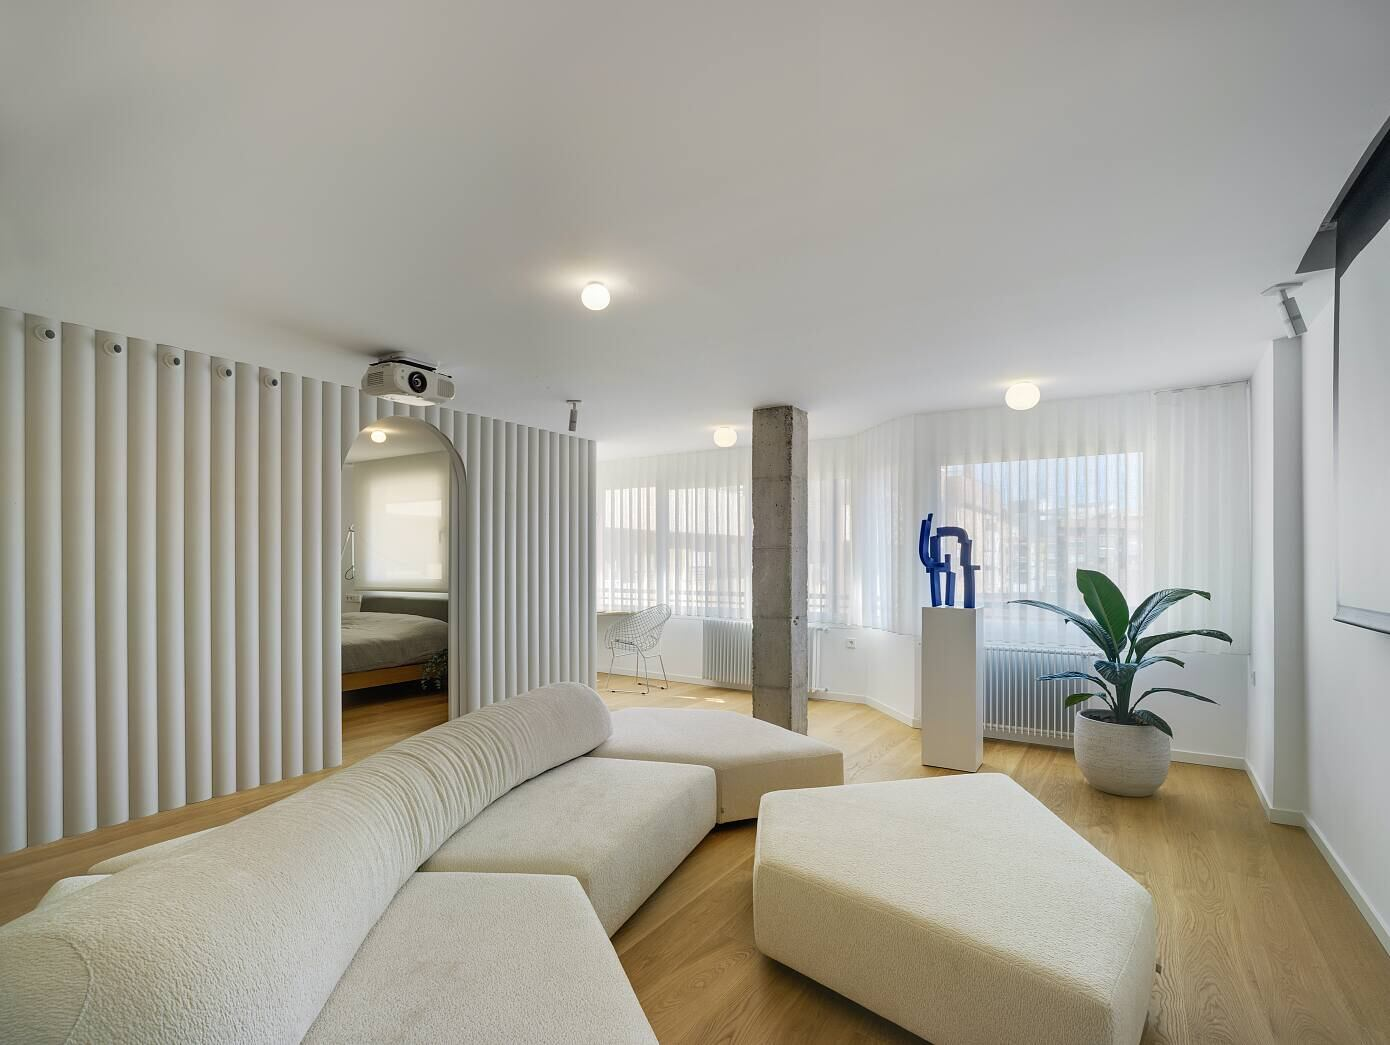 Lab House by Laura Ortín Arquitectura